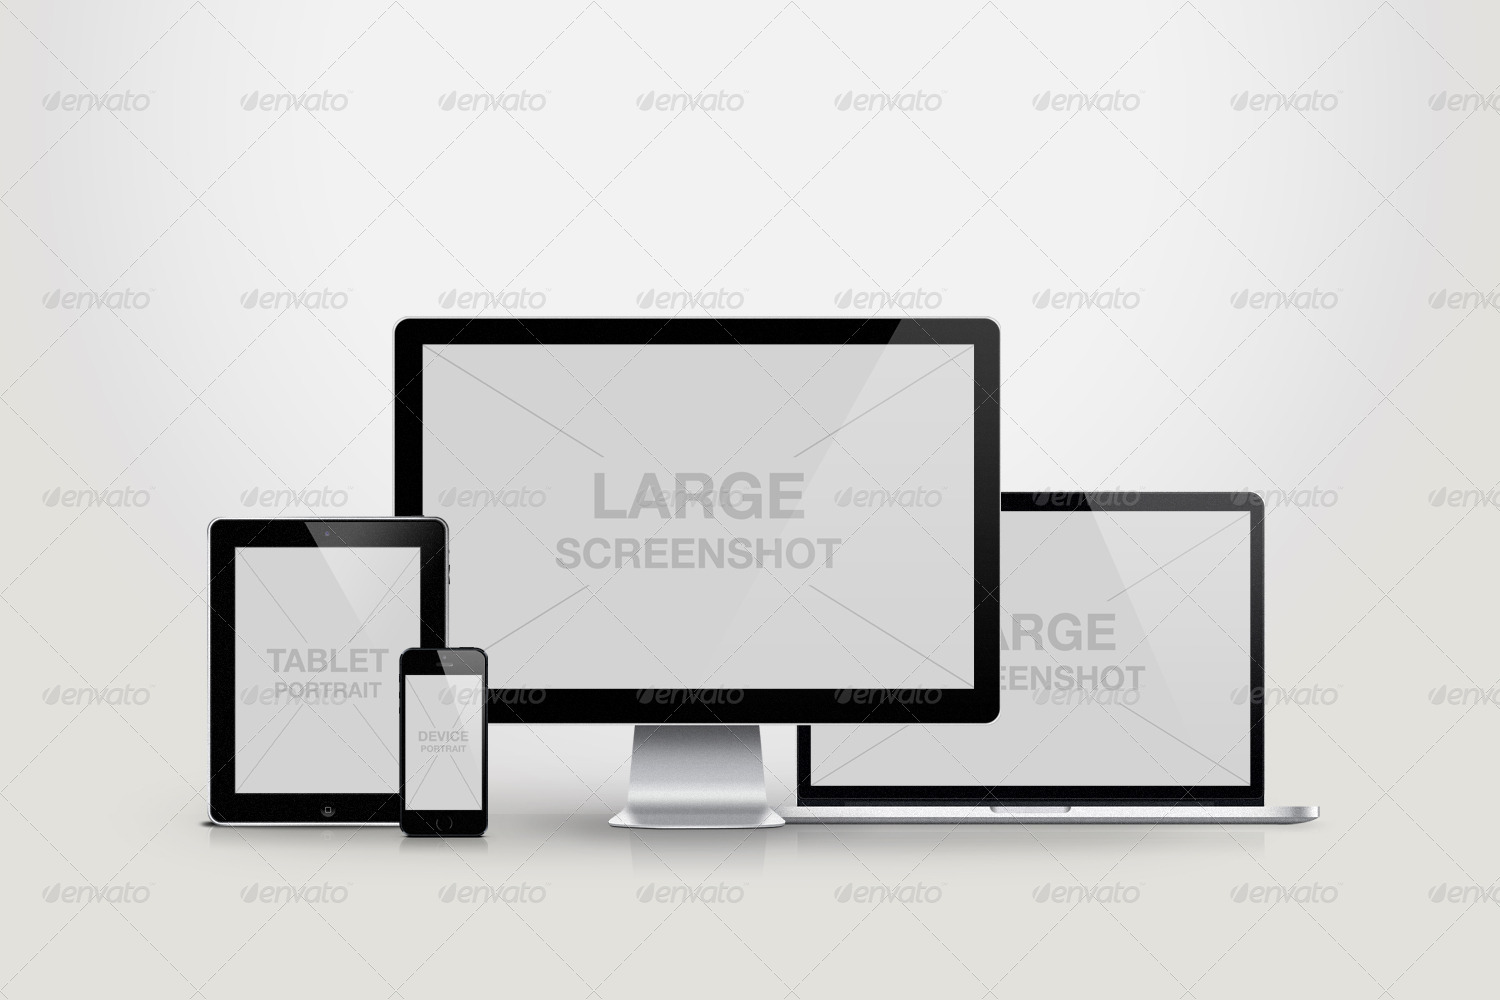 1500x1000 Laptop Mockups Free For Creative And Professional Designers